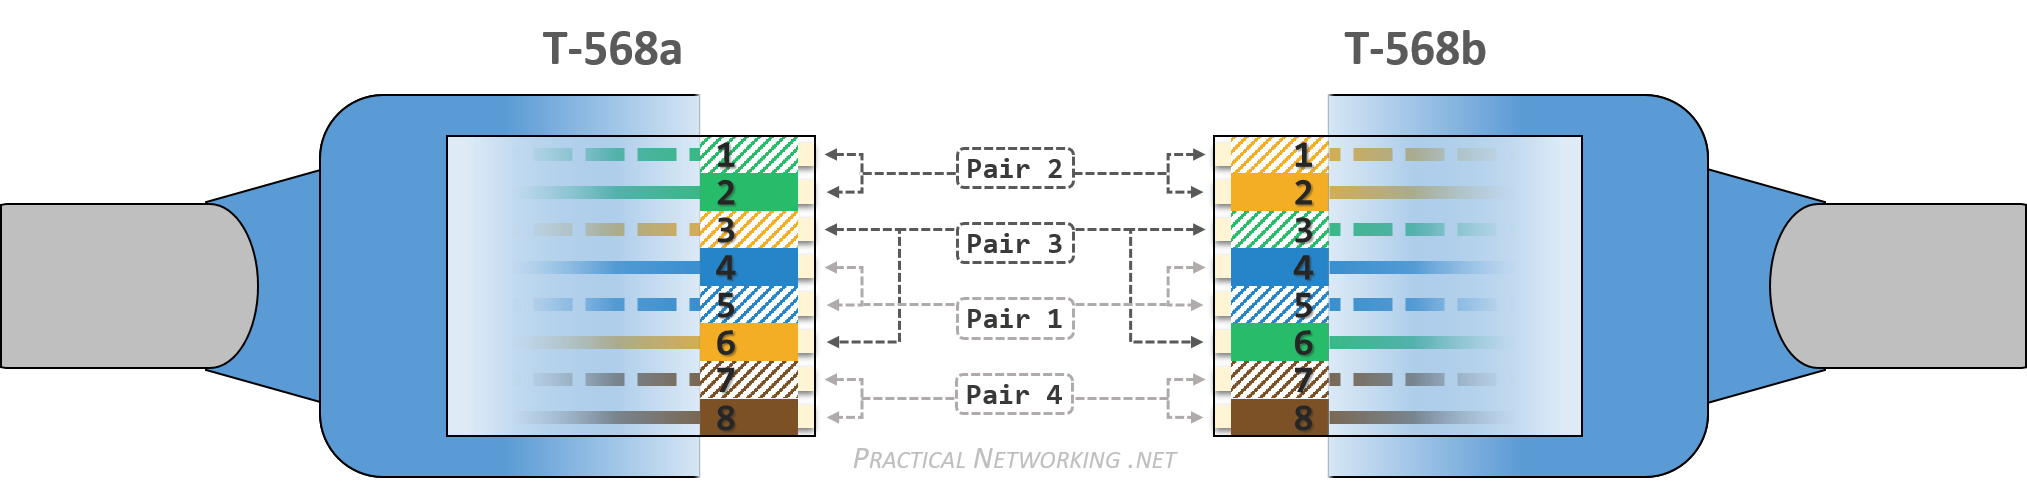 Ethernet Wiring Practical Networking Net Cat5e Datajack Pattern T568a And T568b